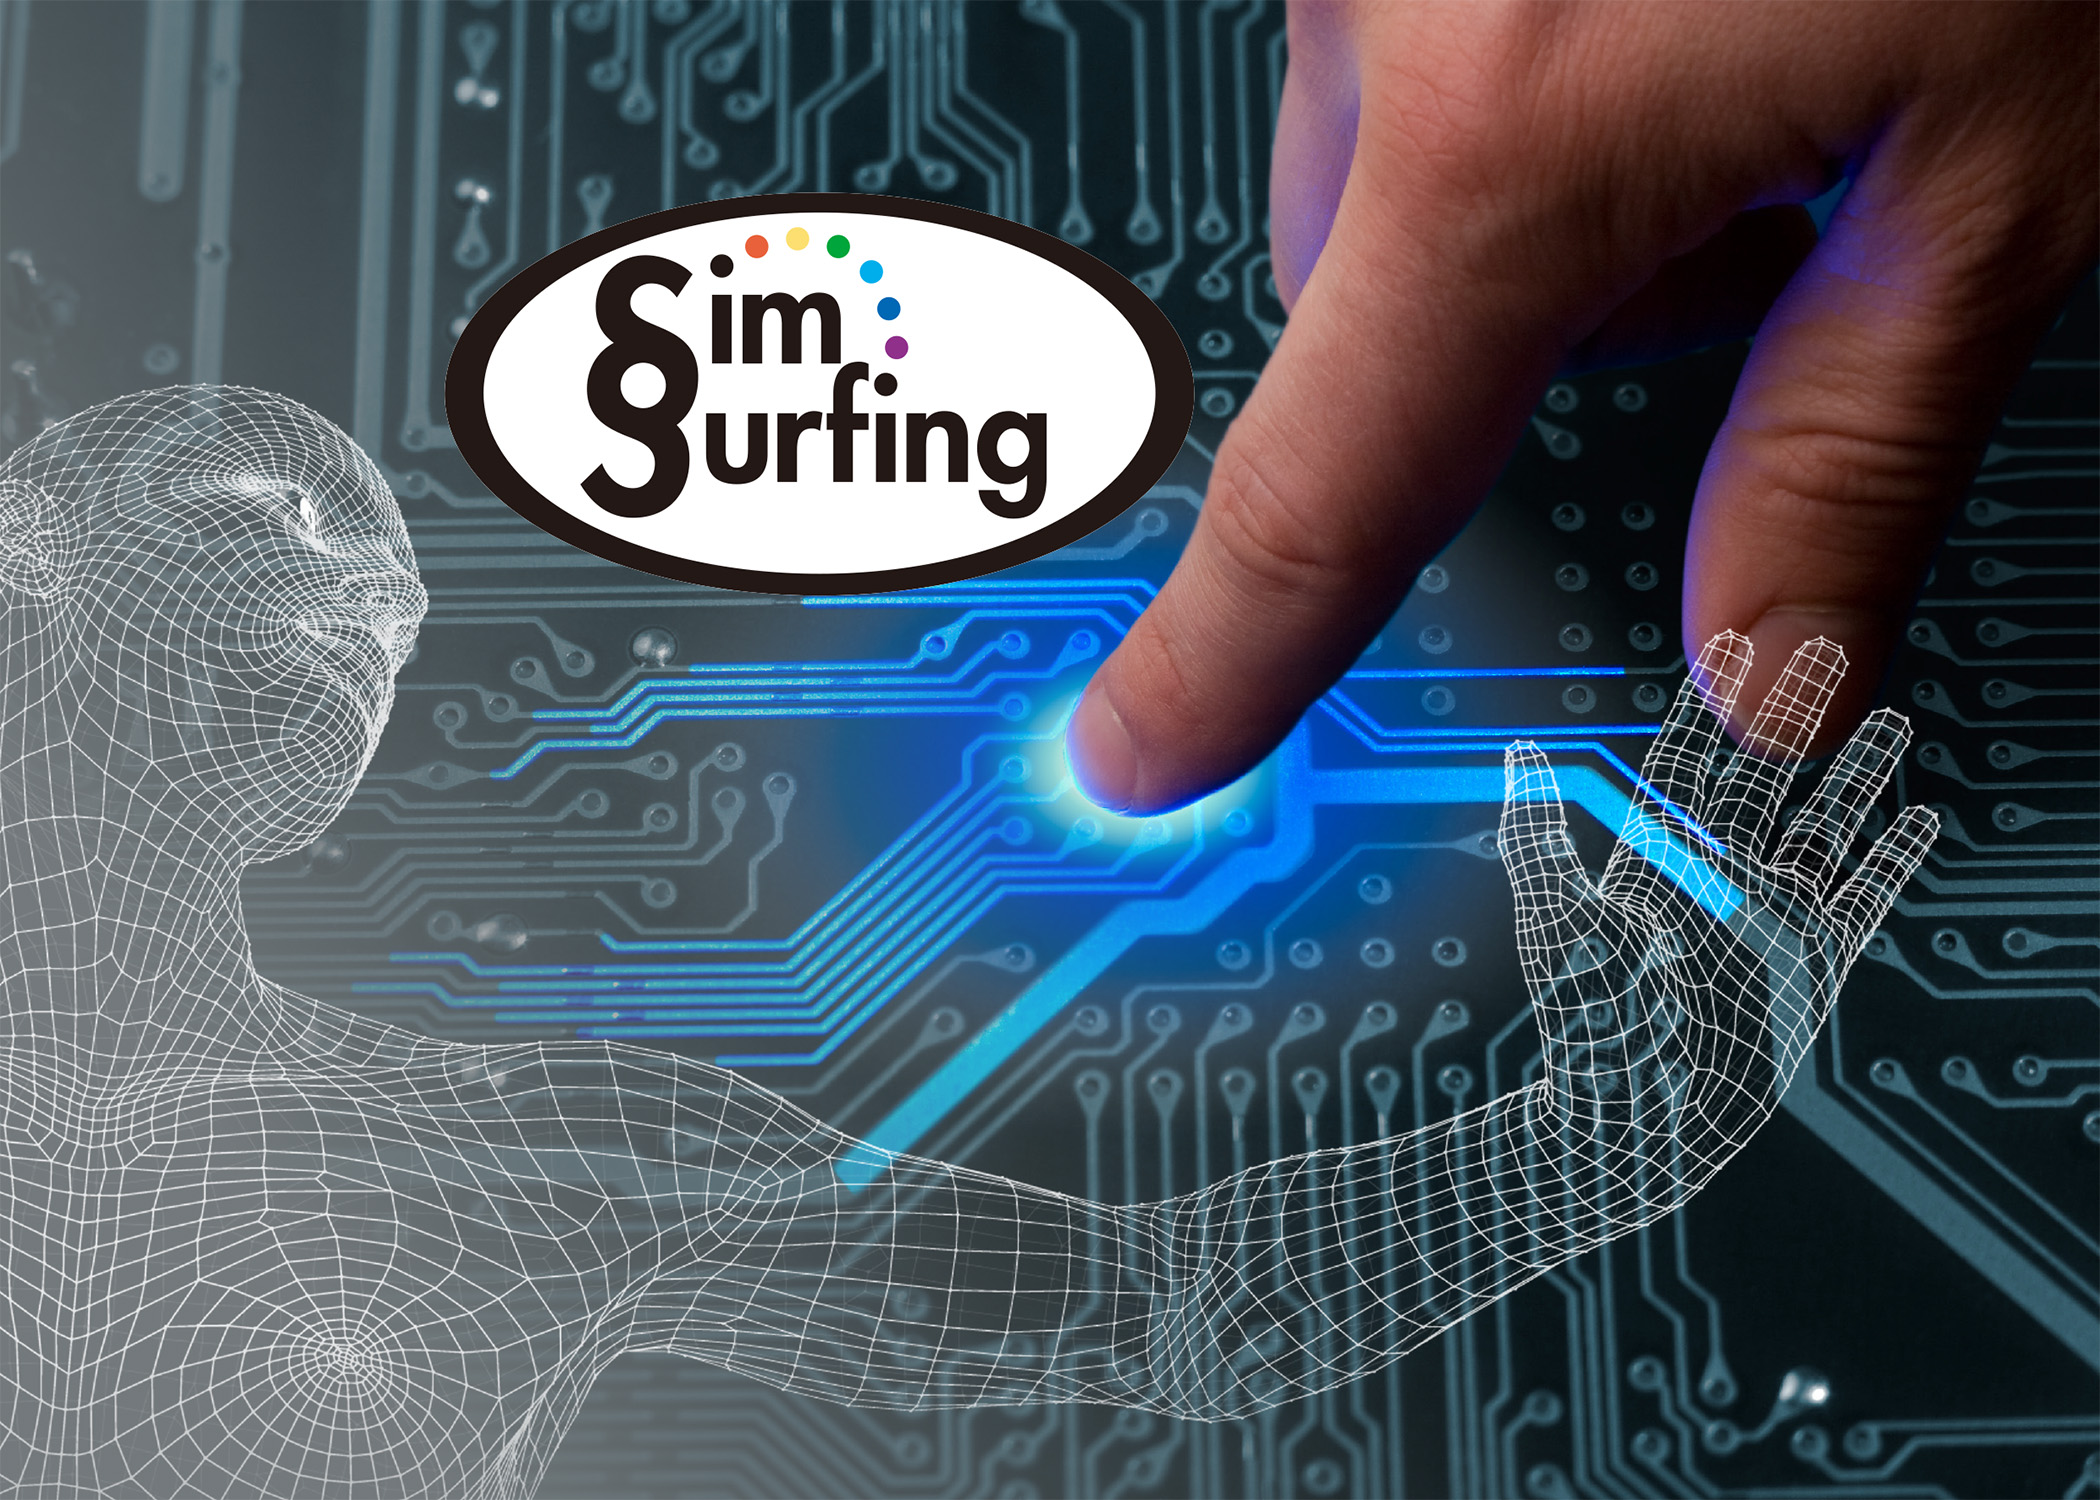 , Murata Adds New Functionality to SimSurfing Design Support Software